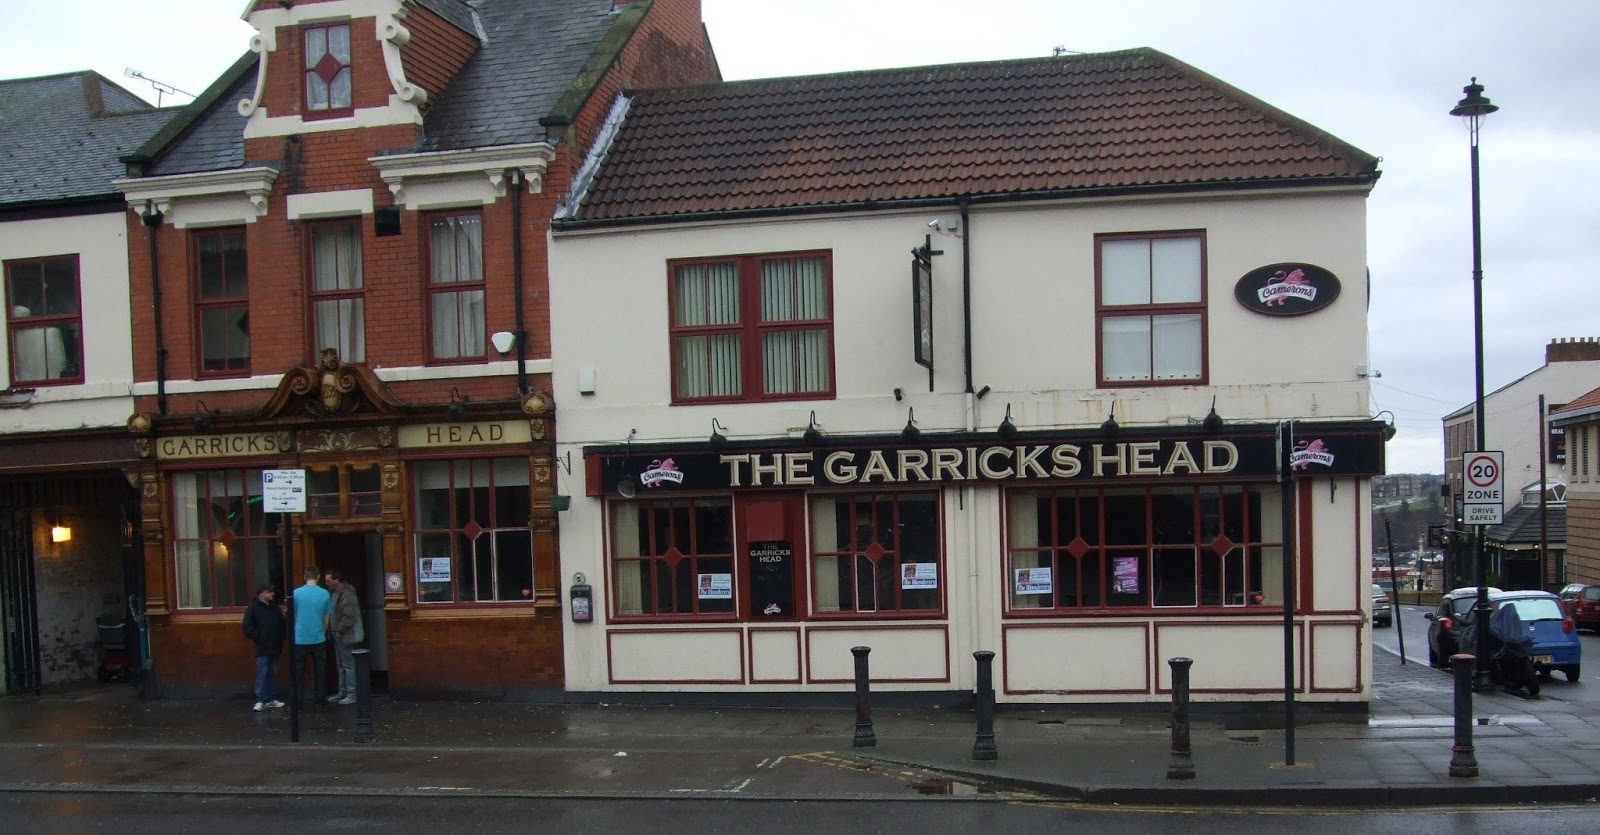 The Garricks Head on Saville Street, North Shields, which has been closed